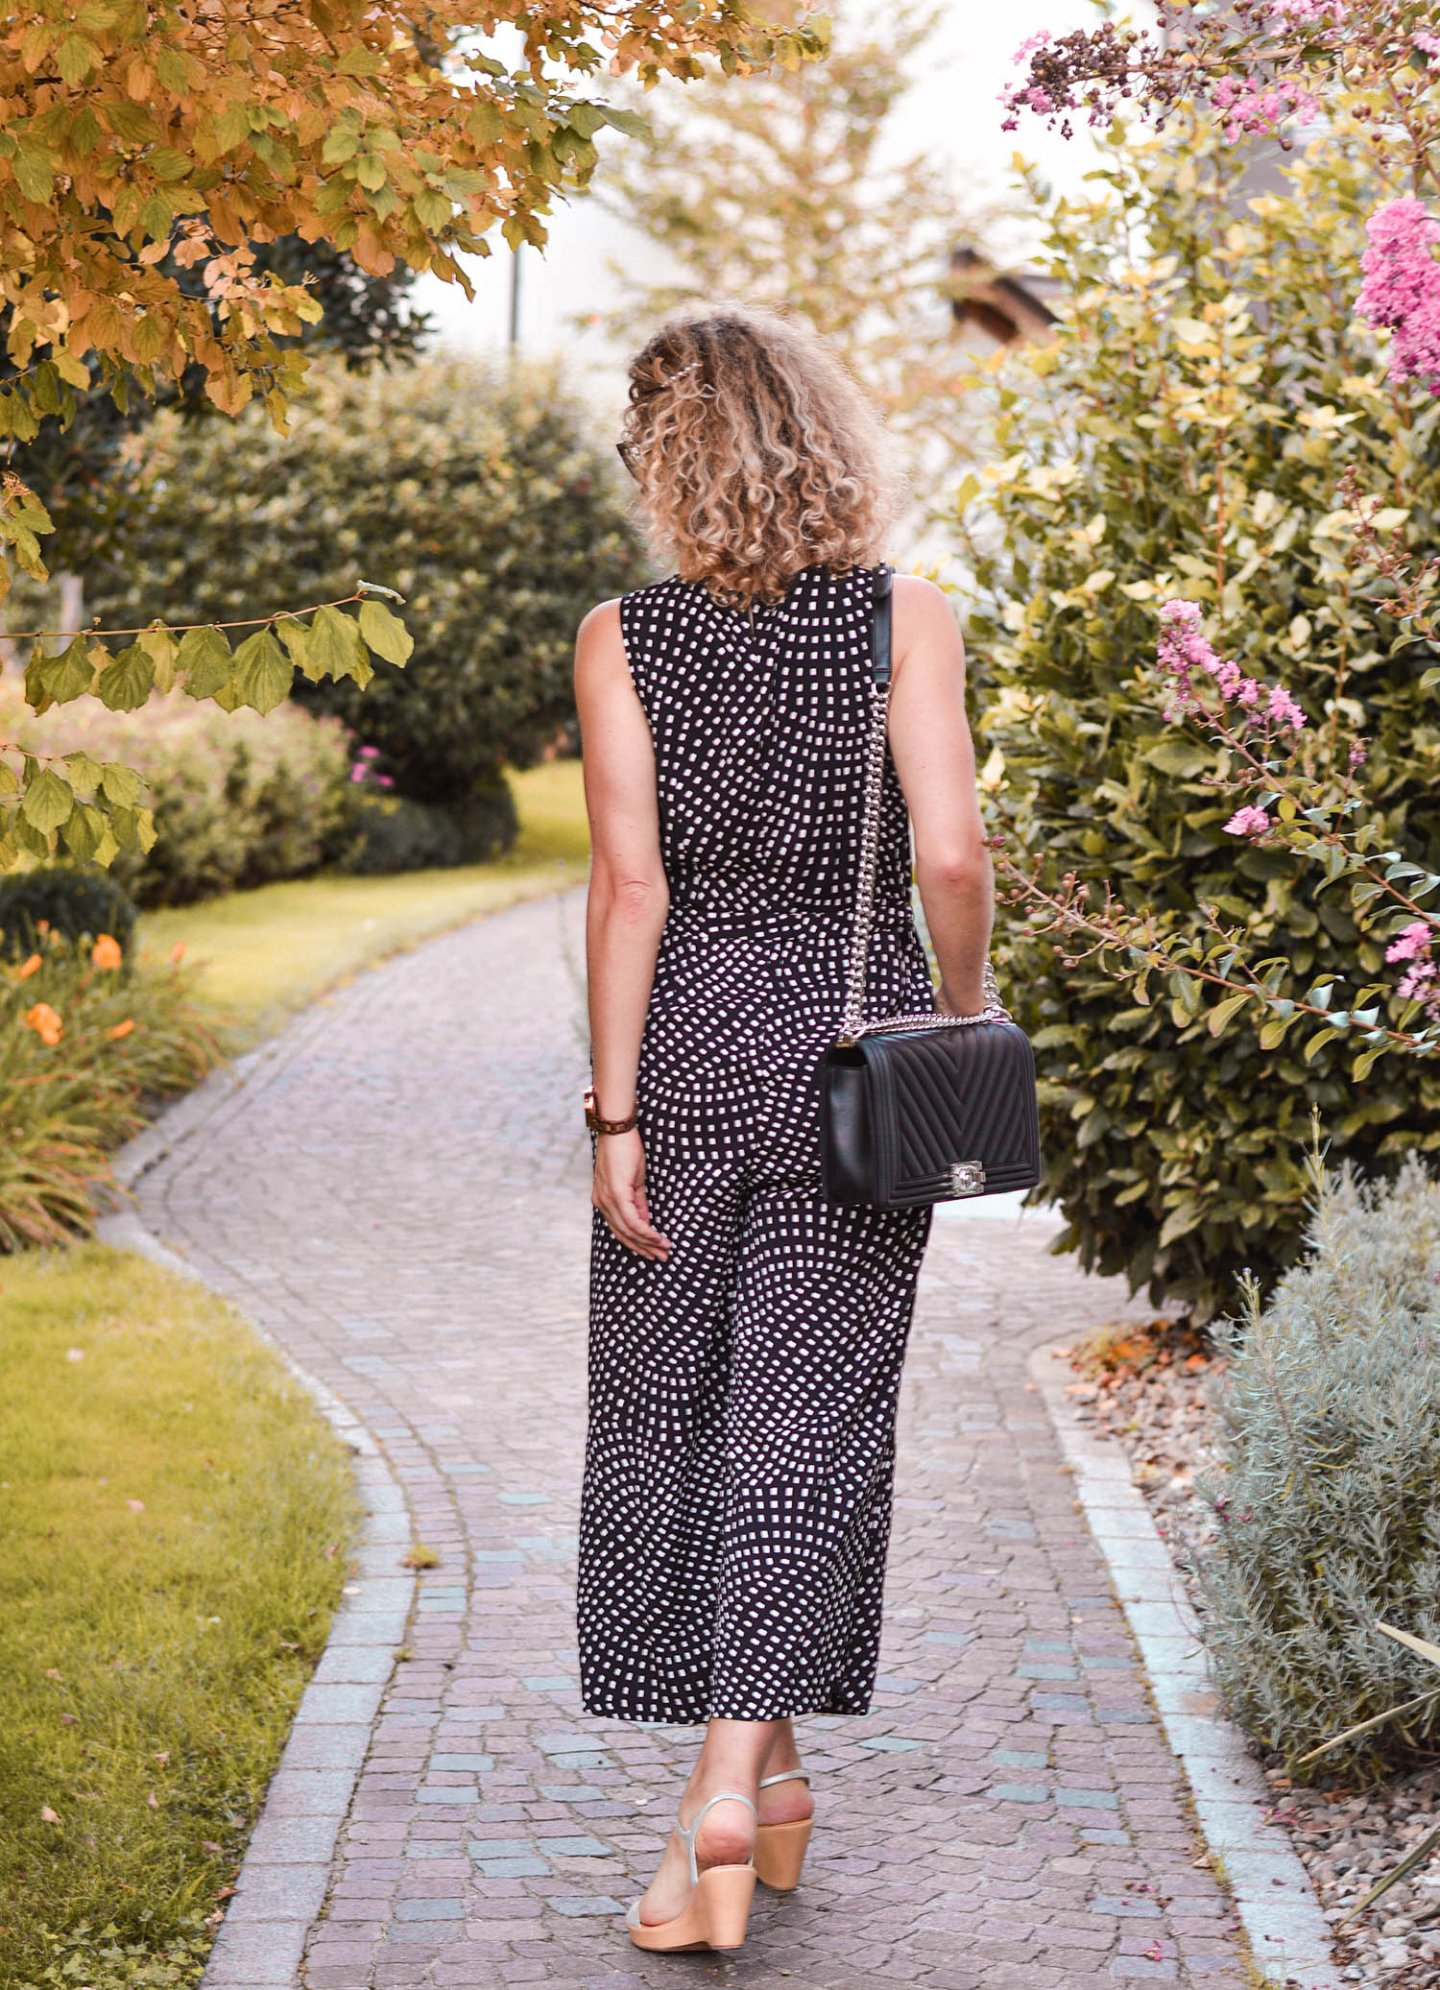 Eleganter Jumpsuit mit Chanel Boy Bag